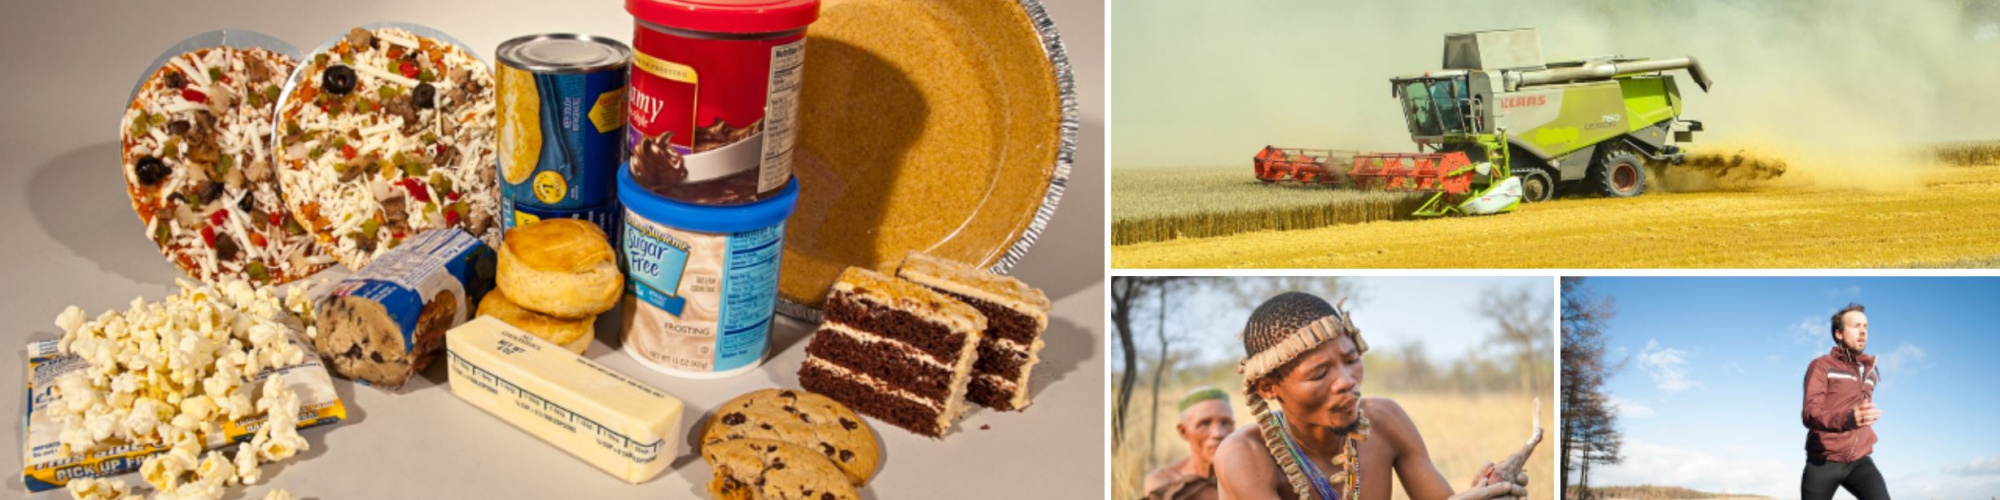 Images, clockwise from left: US FDA, Avoiding trans fat, Flickr, US government work free of copyright restrictions – Anemone123, Combine harvester agriculture, Pixabay, CC0 Creative Commons – StockSnap, People man exercise, Pixabay, CC0 Creative Commons – Andy Maano, Lifestyle of the Bushmen (gathering food), Wikimedia Commons, Creative Commons Attribution-Share Alike 4.0 International